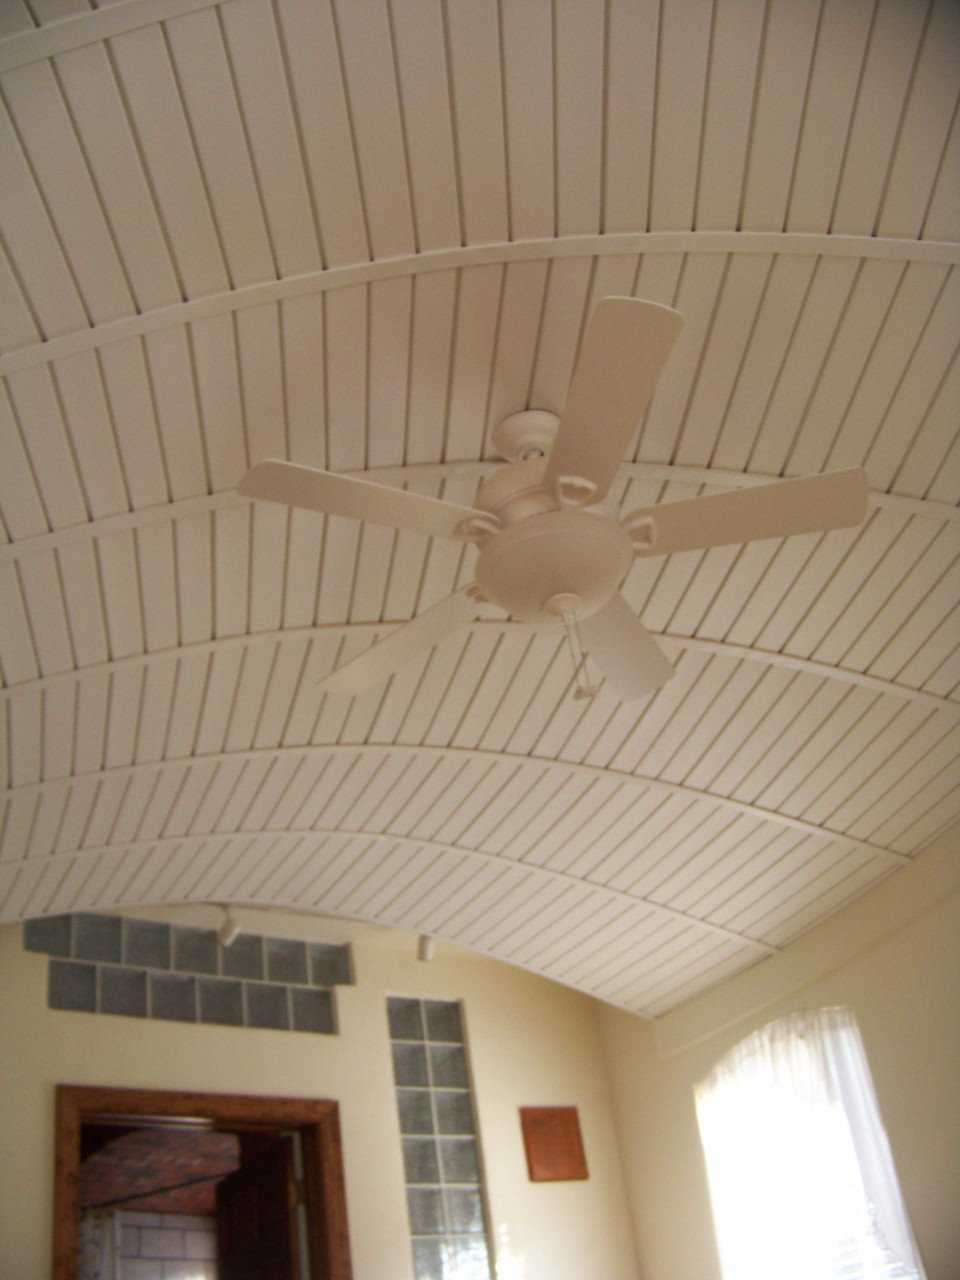 Cool! — The fan contributes comfort while the ceiling it hangs from contributes beauty.